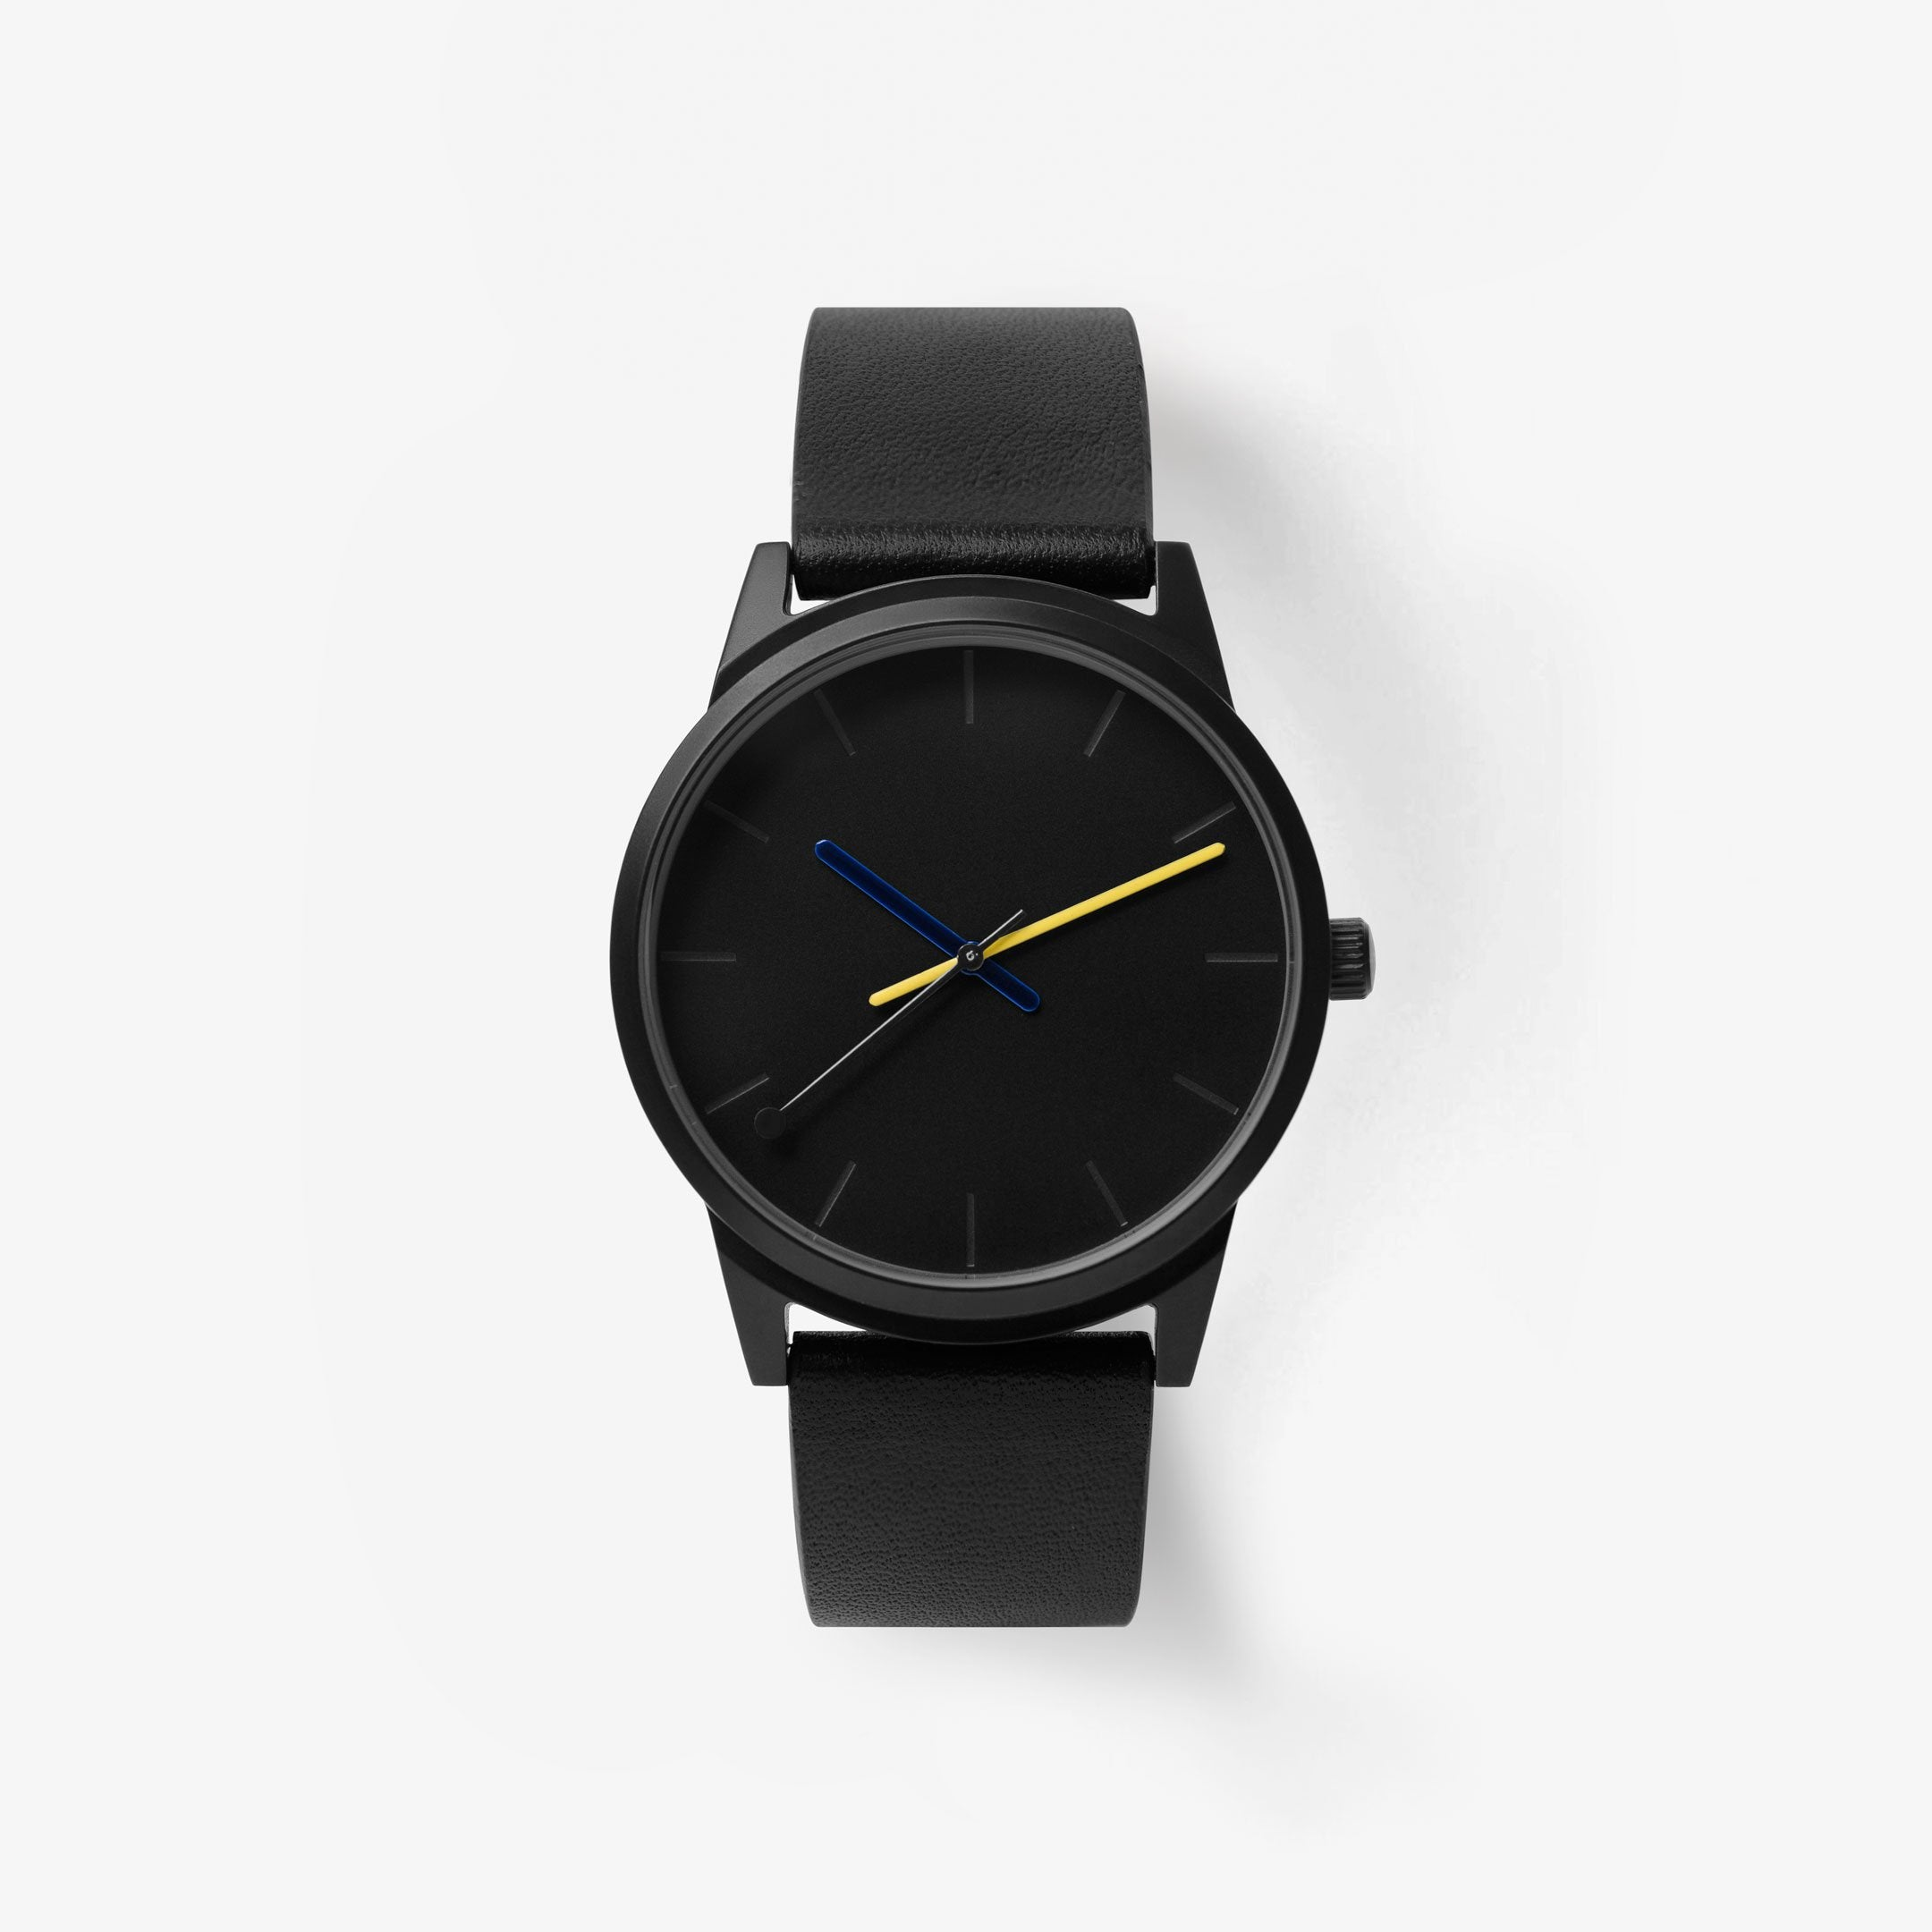 //cdn.shopify.com/s/files/1/0879/6650/products/breda-poketo-5021a-spectra-black-leather-band-collaboration-watch-front_1024x1024.jpg?v=1542823192